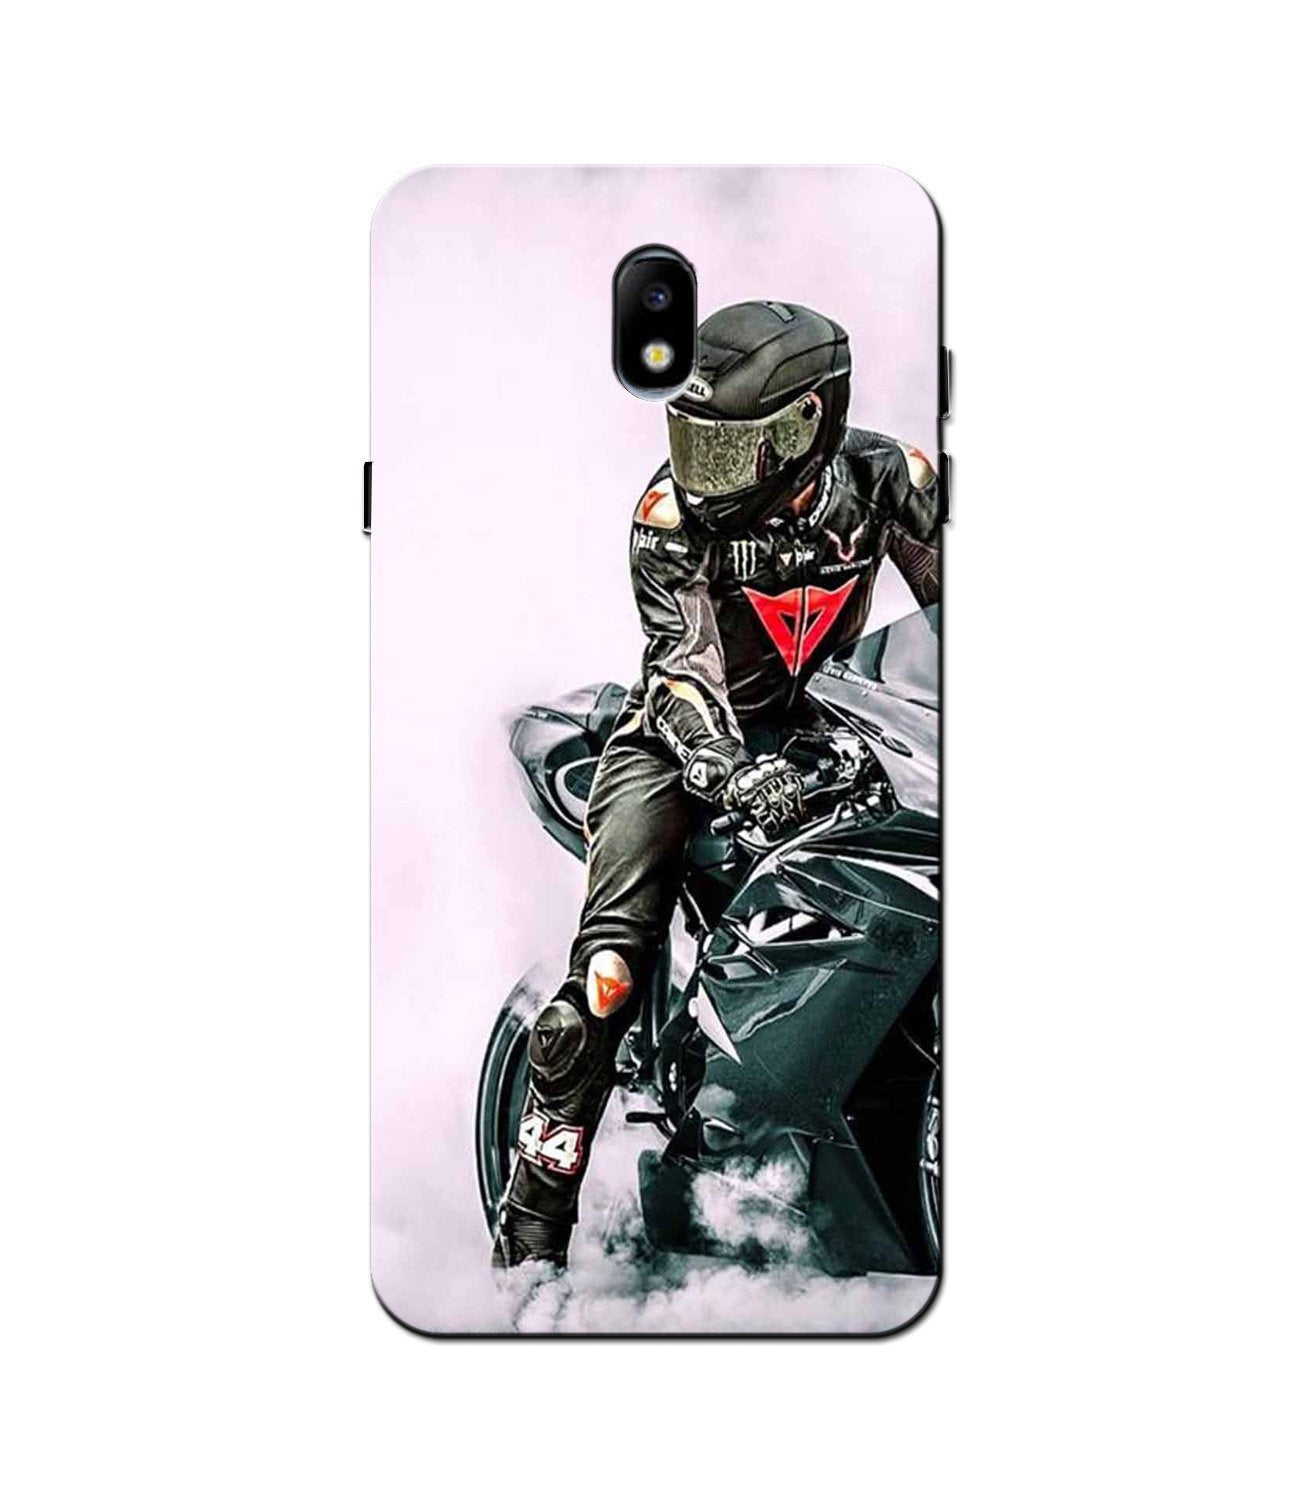 Biker Mobile Back Case for Galaxy J5 Pro  (Design - 383)